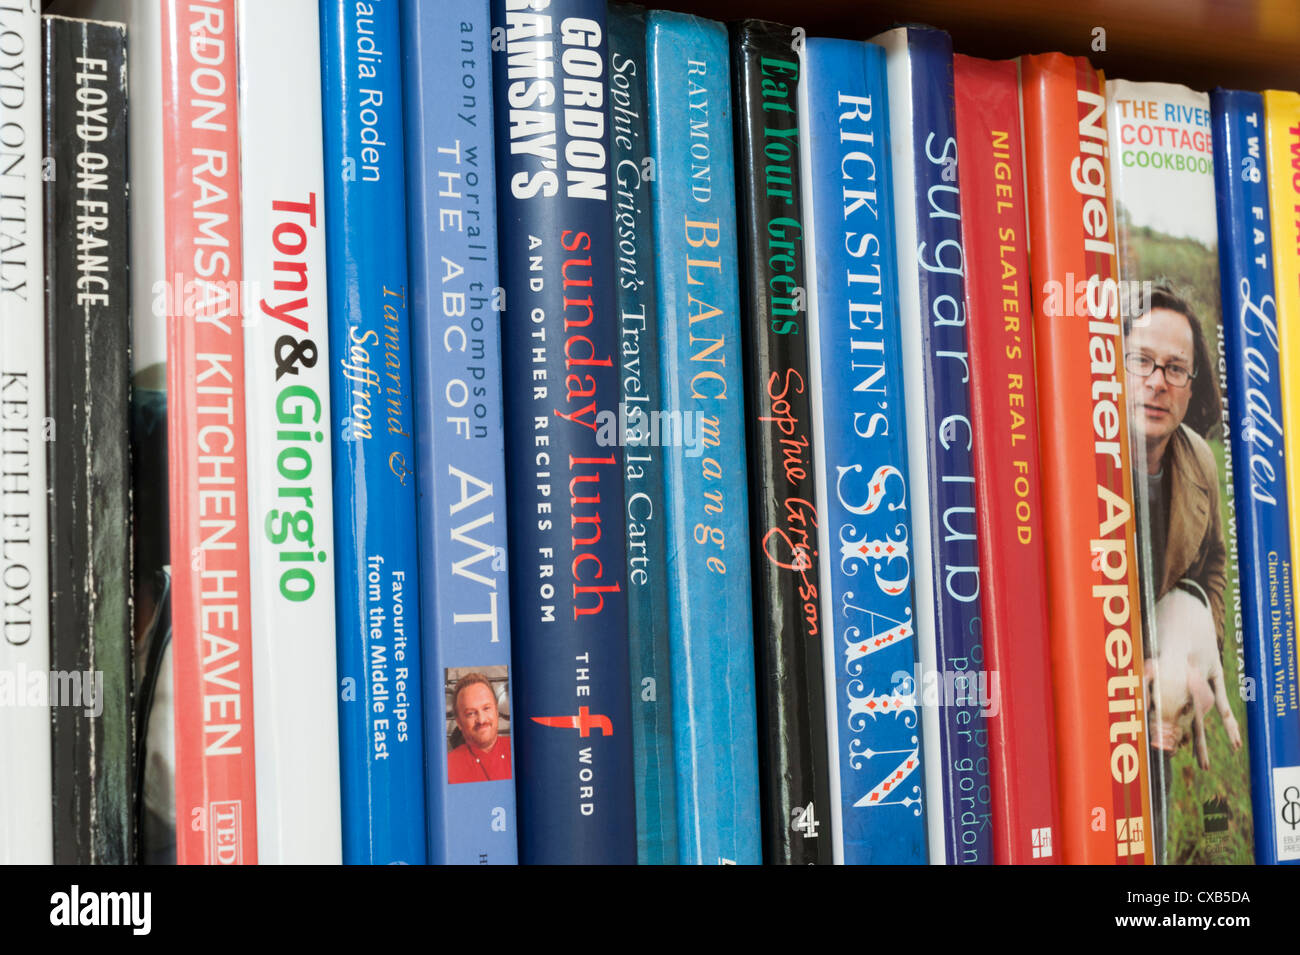 Cook Books Stock Photos & Cook Books Stock Images - Alamy